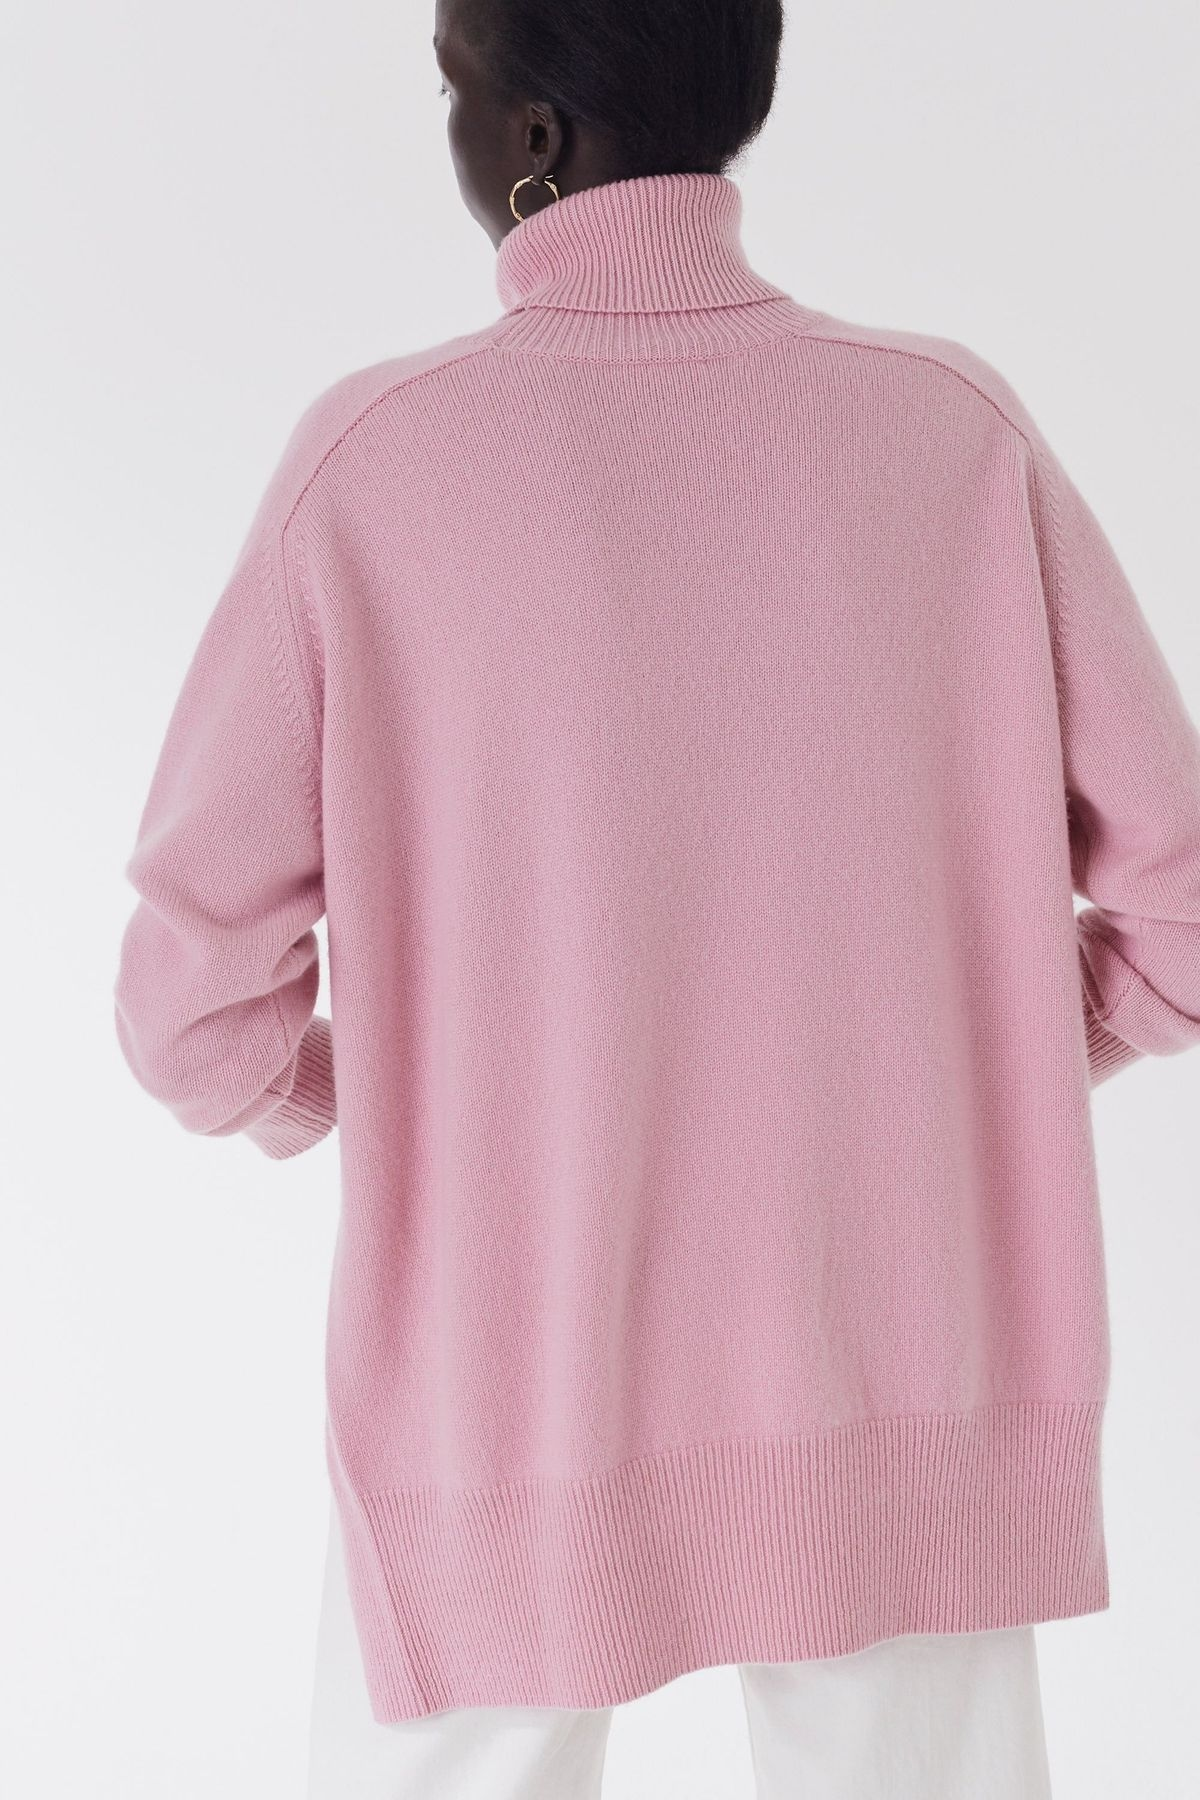 Elodie's Favourite Pink_hover